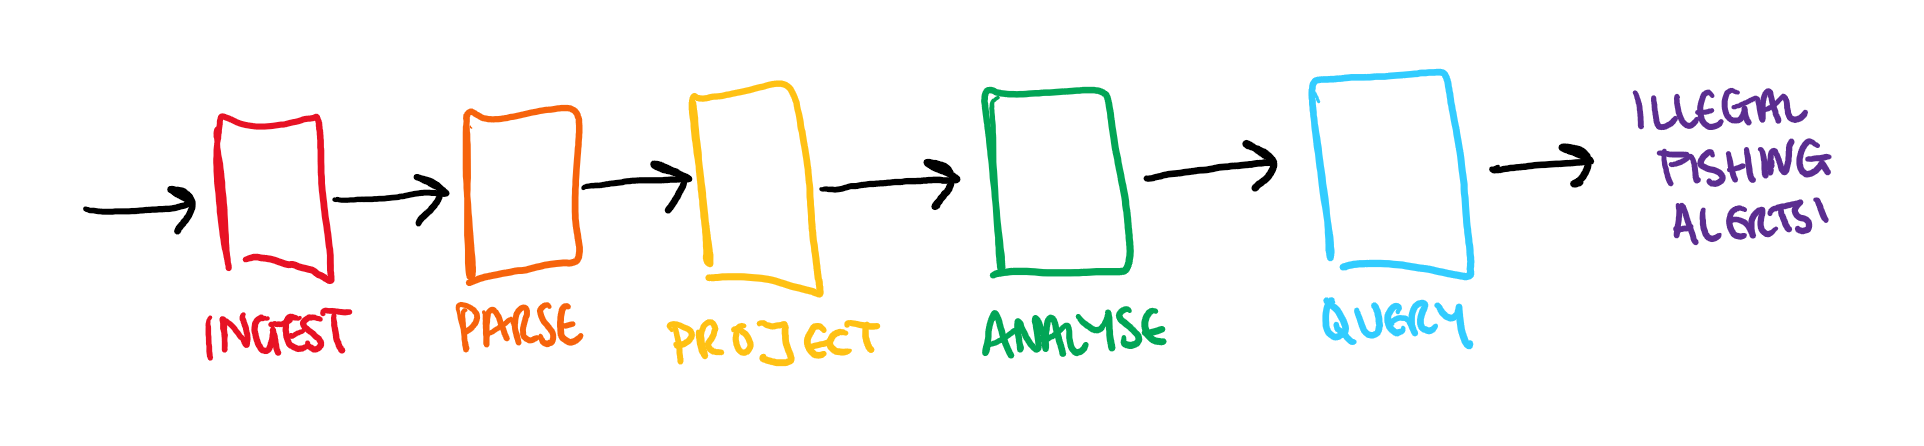 Diagram of orchestration: ingest, parse, project, analyse and query.